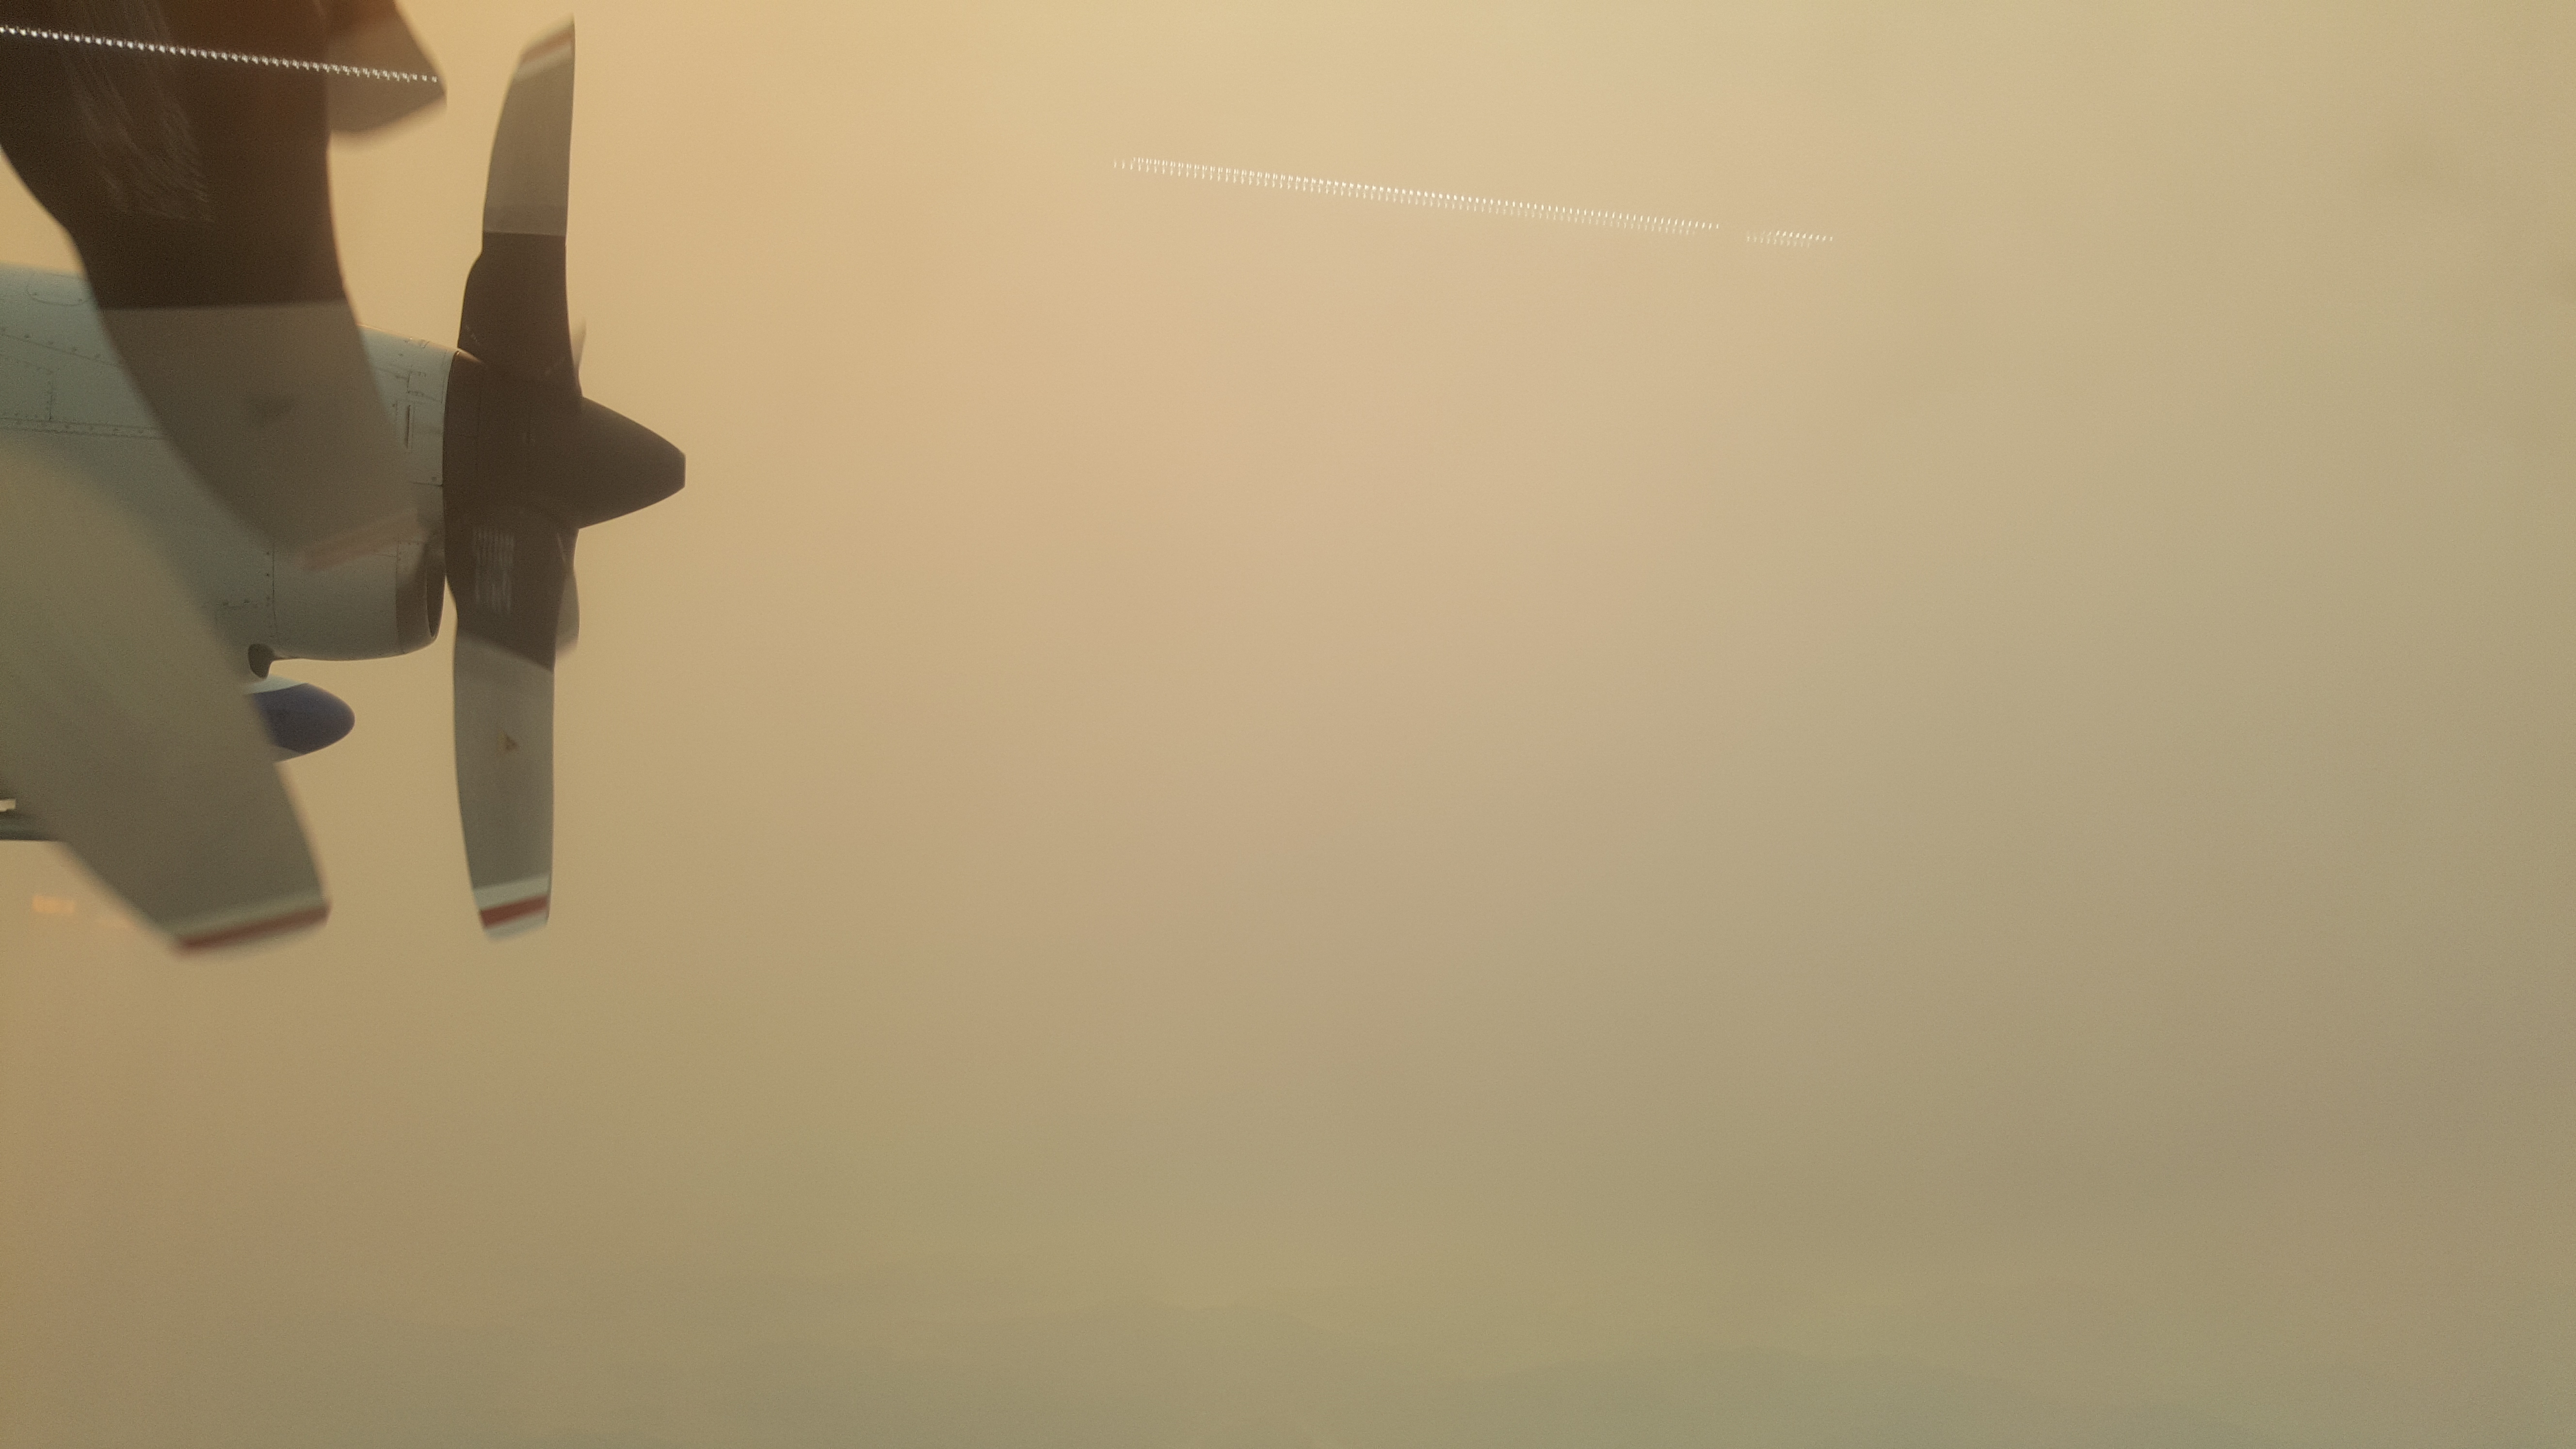 A plane propeller is visible in thick yellow/brown smoke